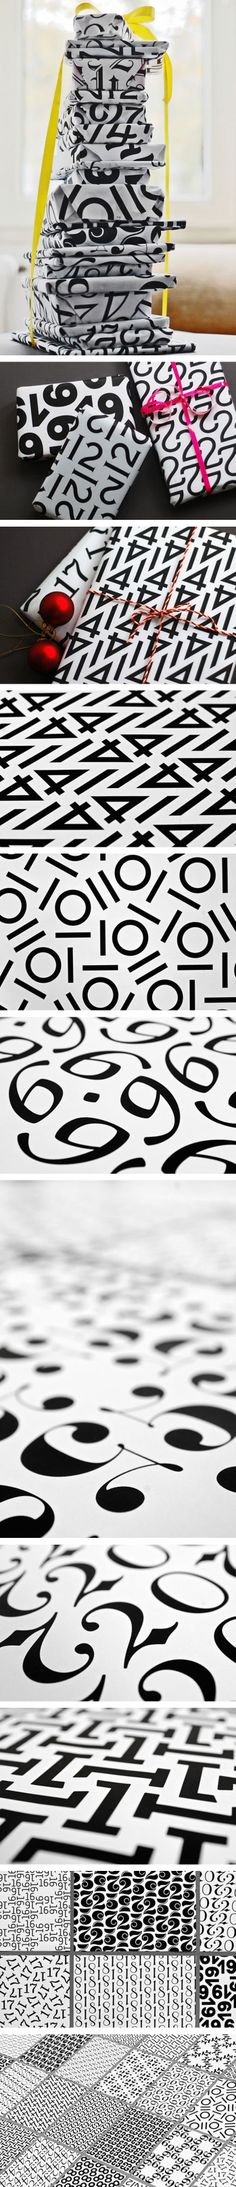 Typographic Gift Wrap by Angelo Stitz,